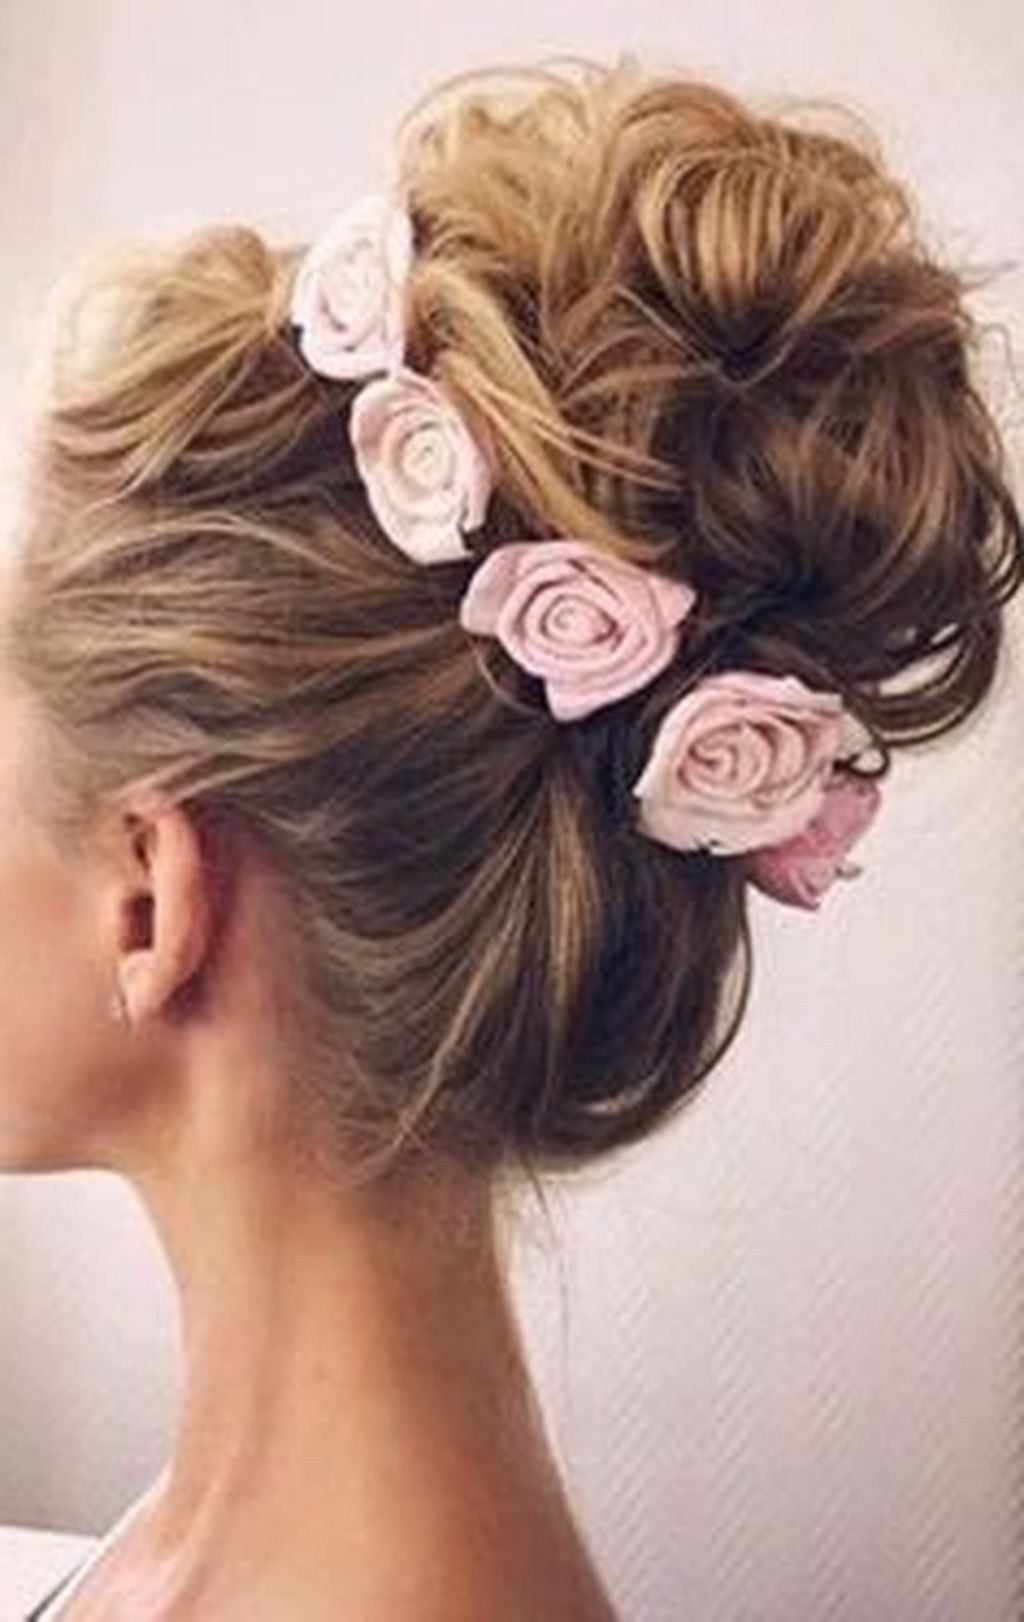 51 Amazing Wedding Hairstyles For Medium Hair Ideas To Makes You Pertaining To 2018 Medium Hairstyles For Brides (View 1 of 20)